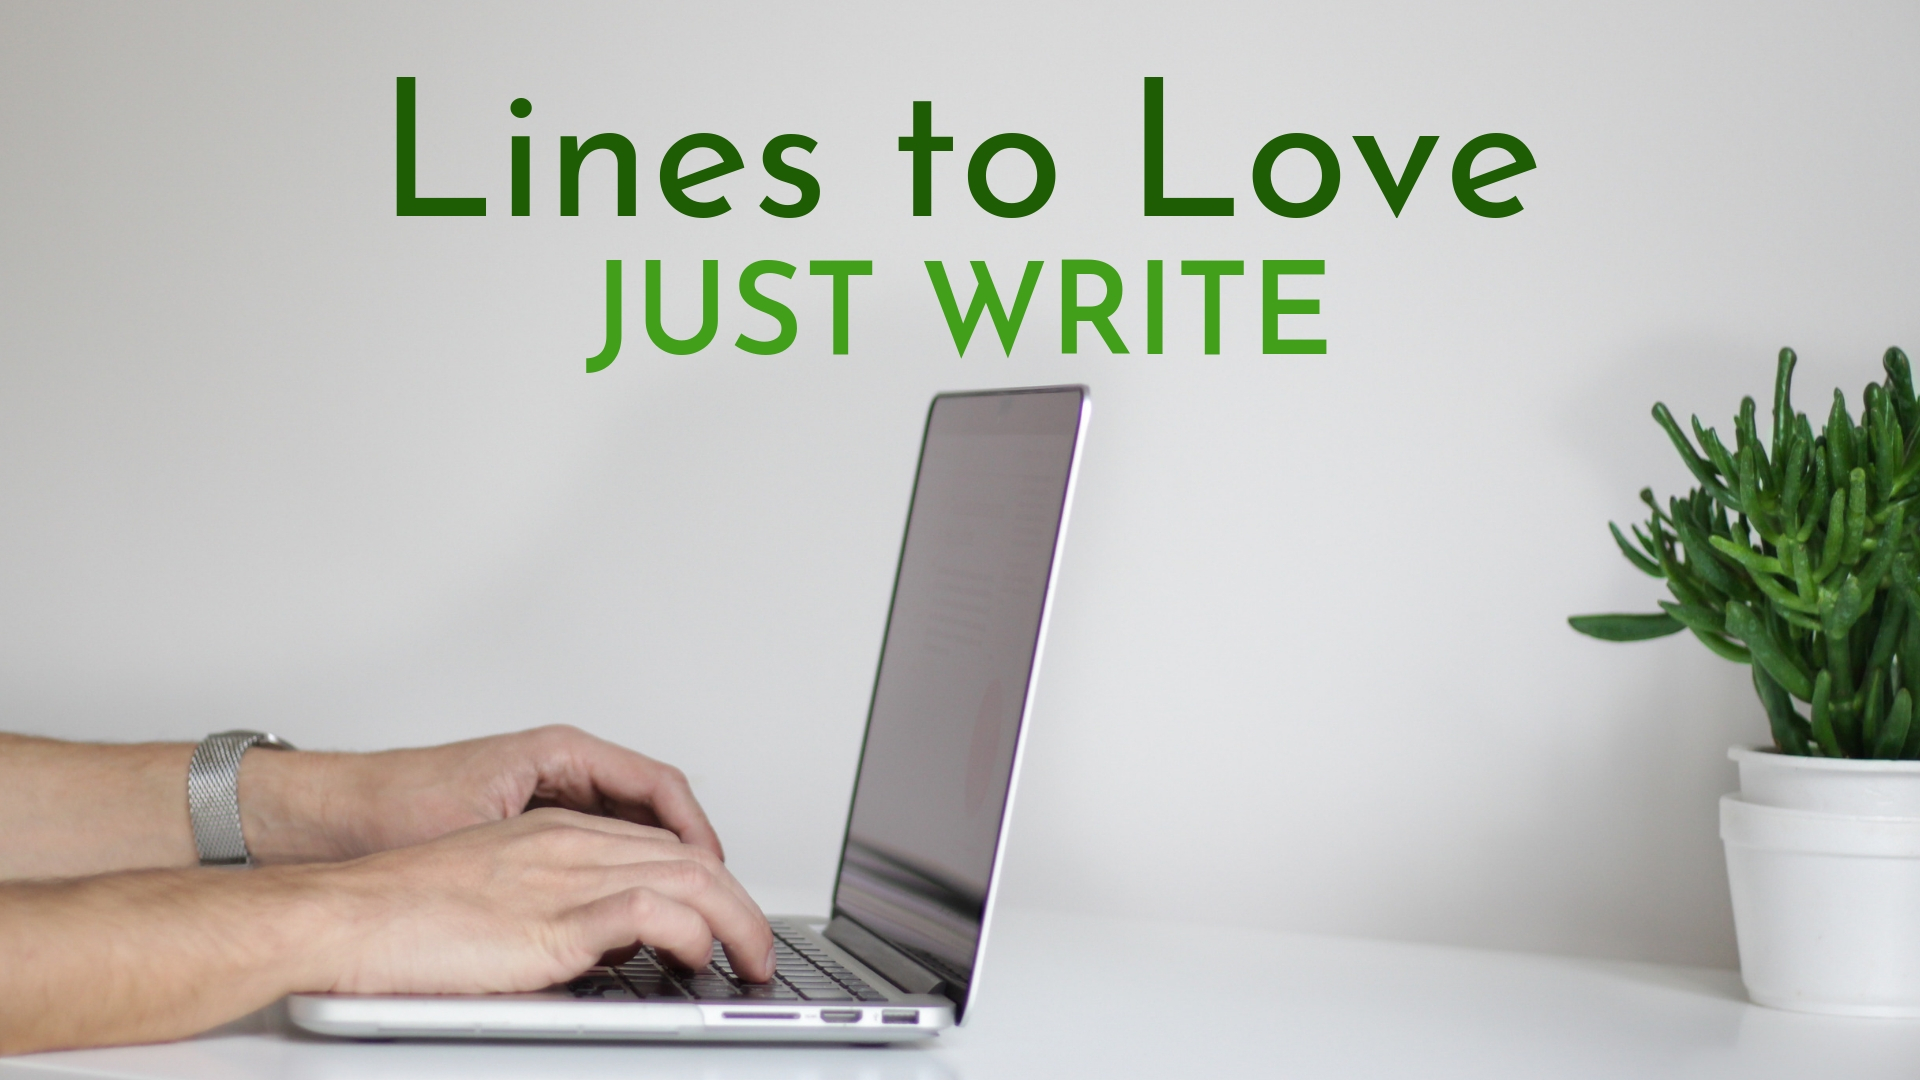 banner-lines-to-love-just-write-01.jpg